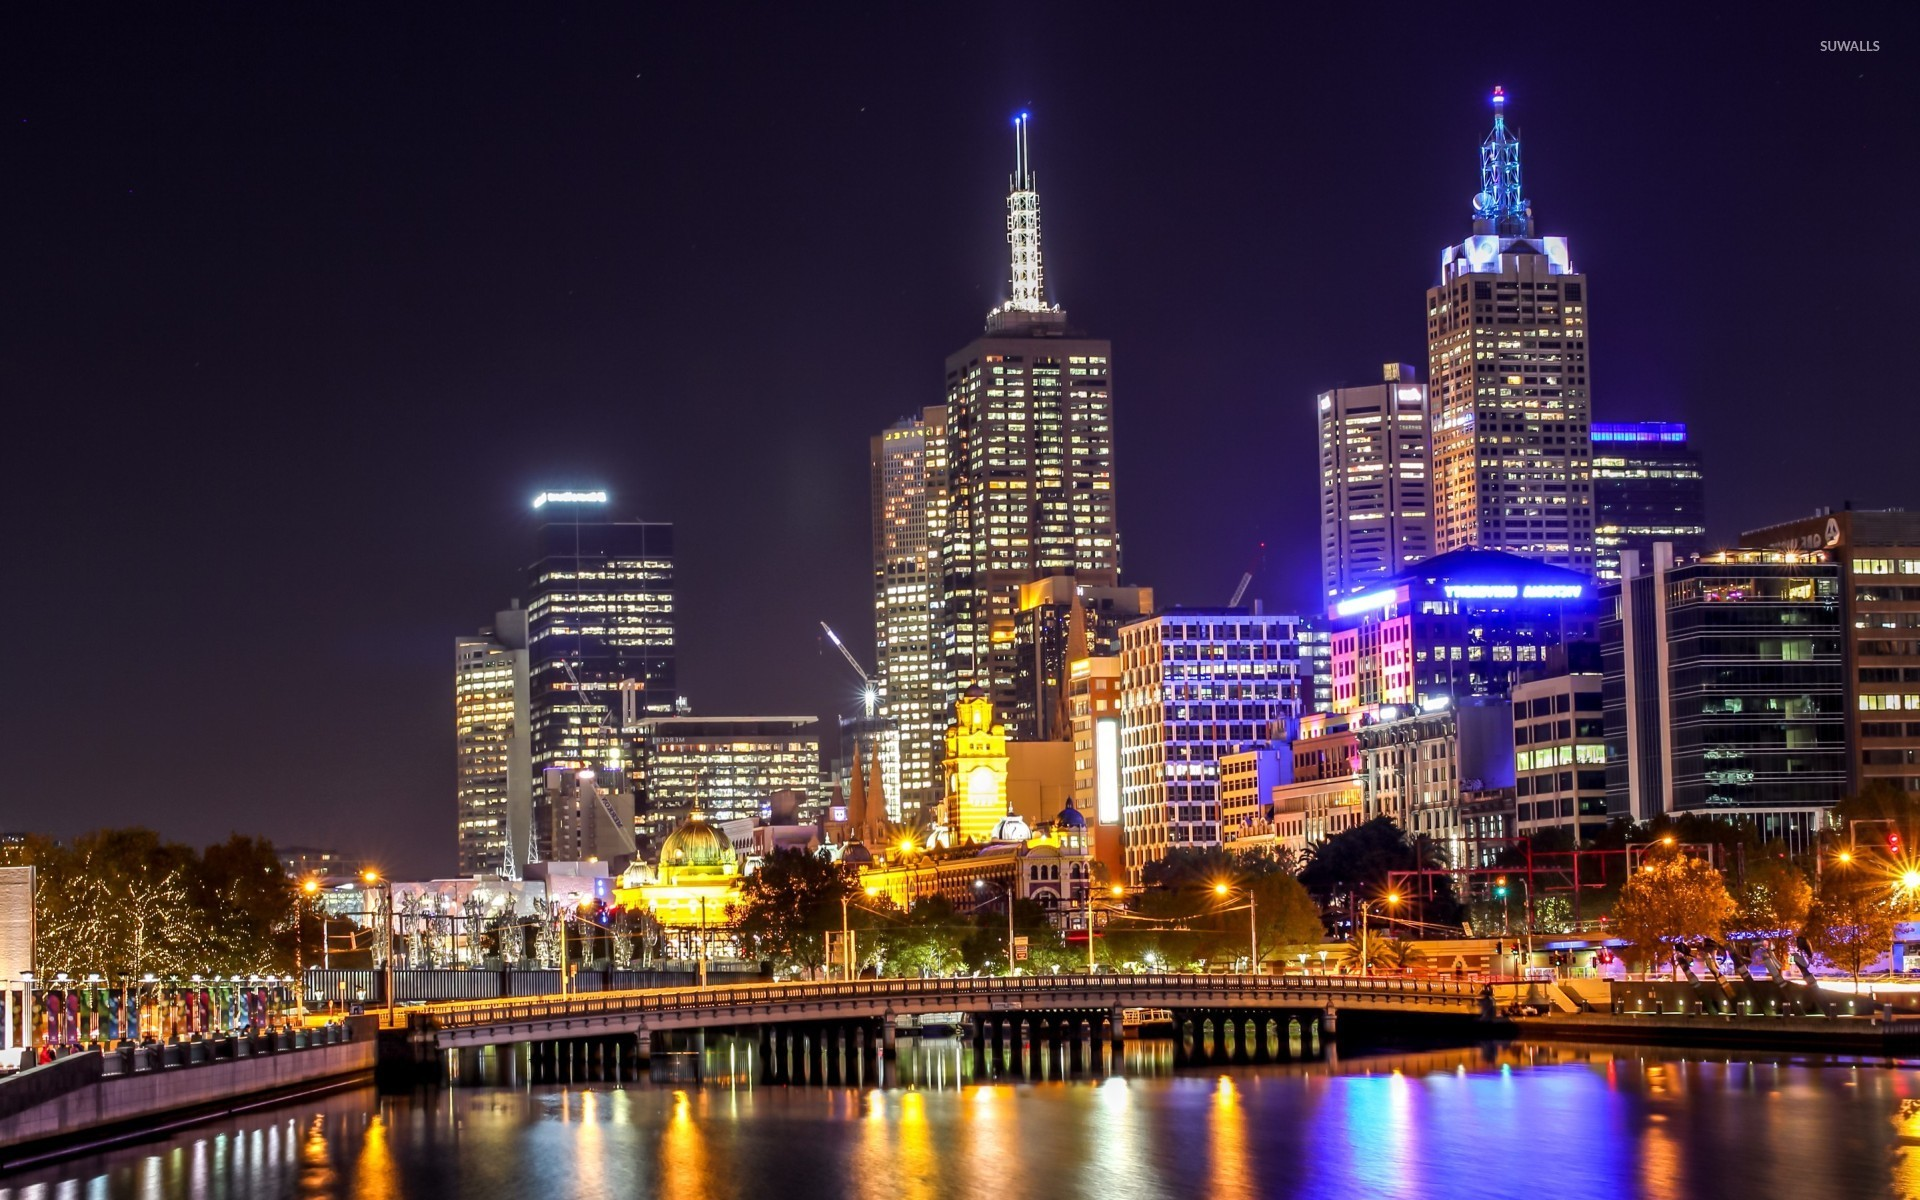 Melbourne Night Light Reflecting In The Water 47500 1920×1200 Wallpaper